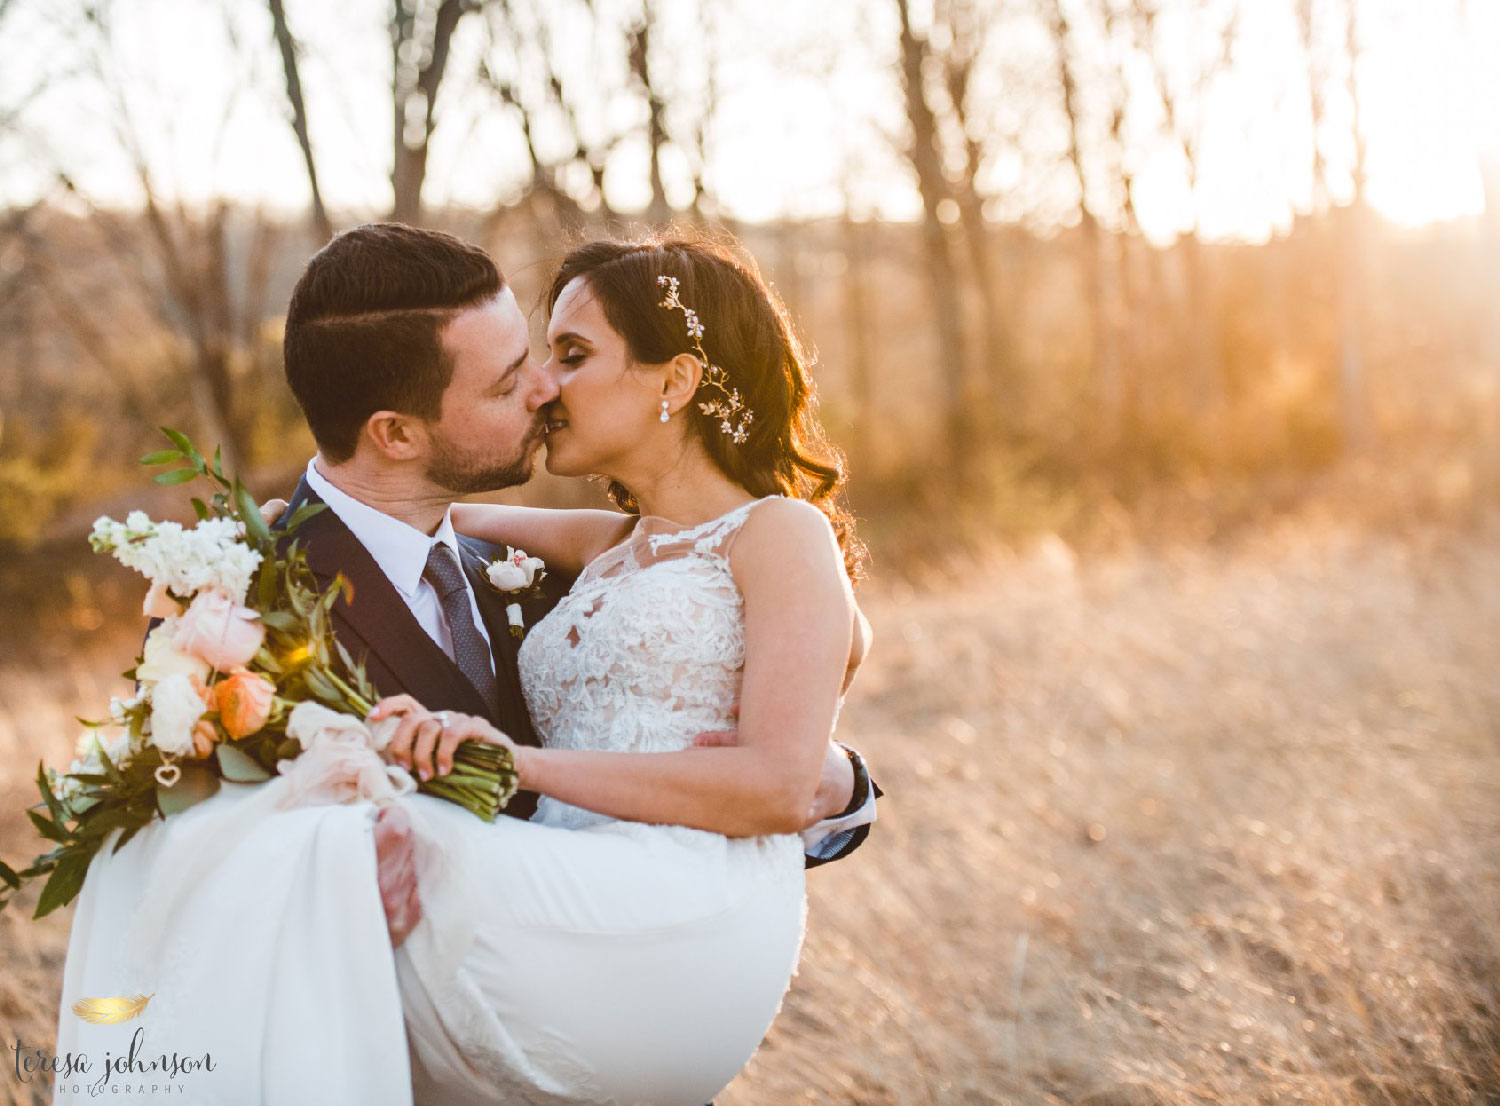 groom holding up bride about to kiss in a grassy field connecticut wedding photographer Teresa Johnson